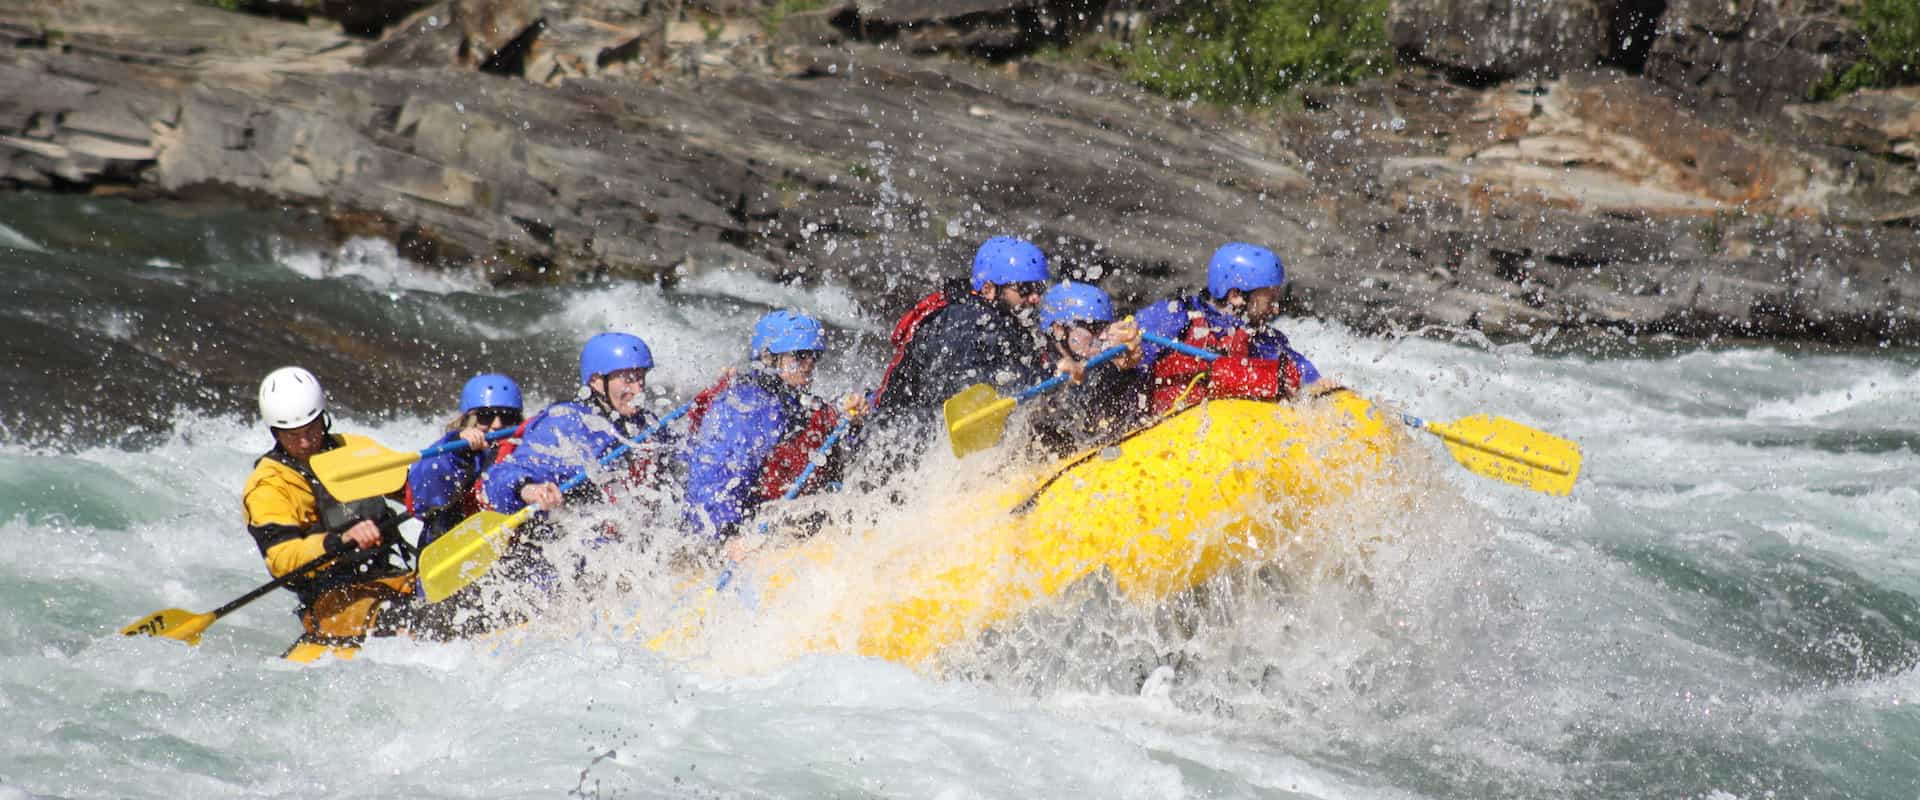 Class 4 rapids on the Horseshoe Canyon in the Canadian Rockies